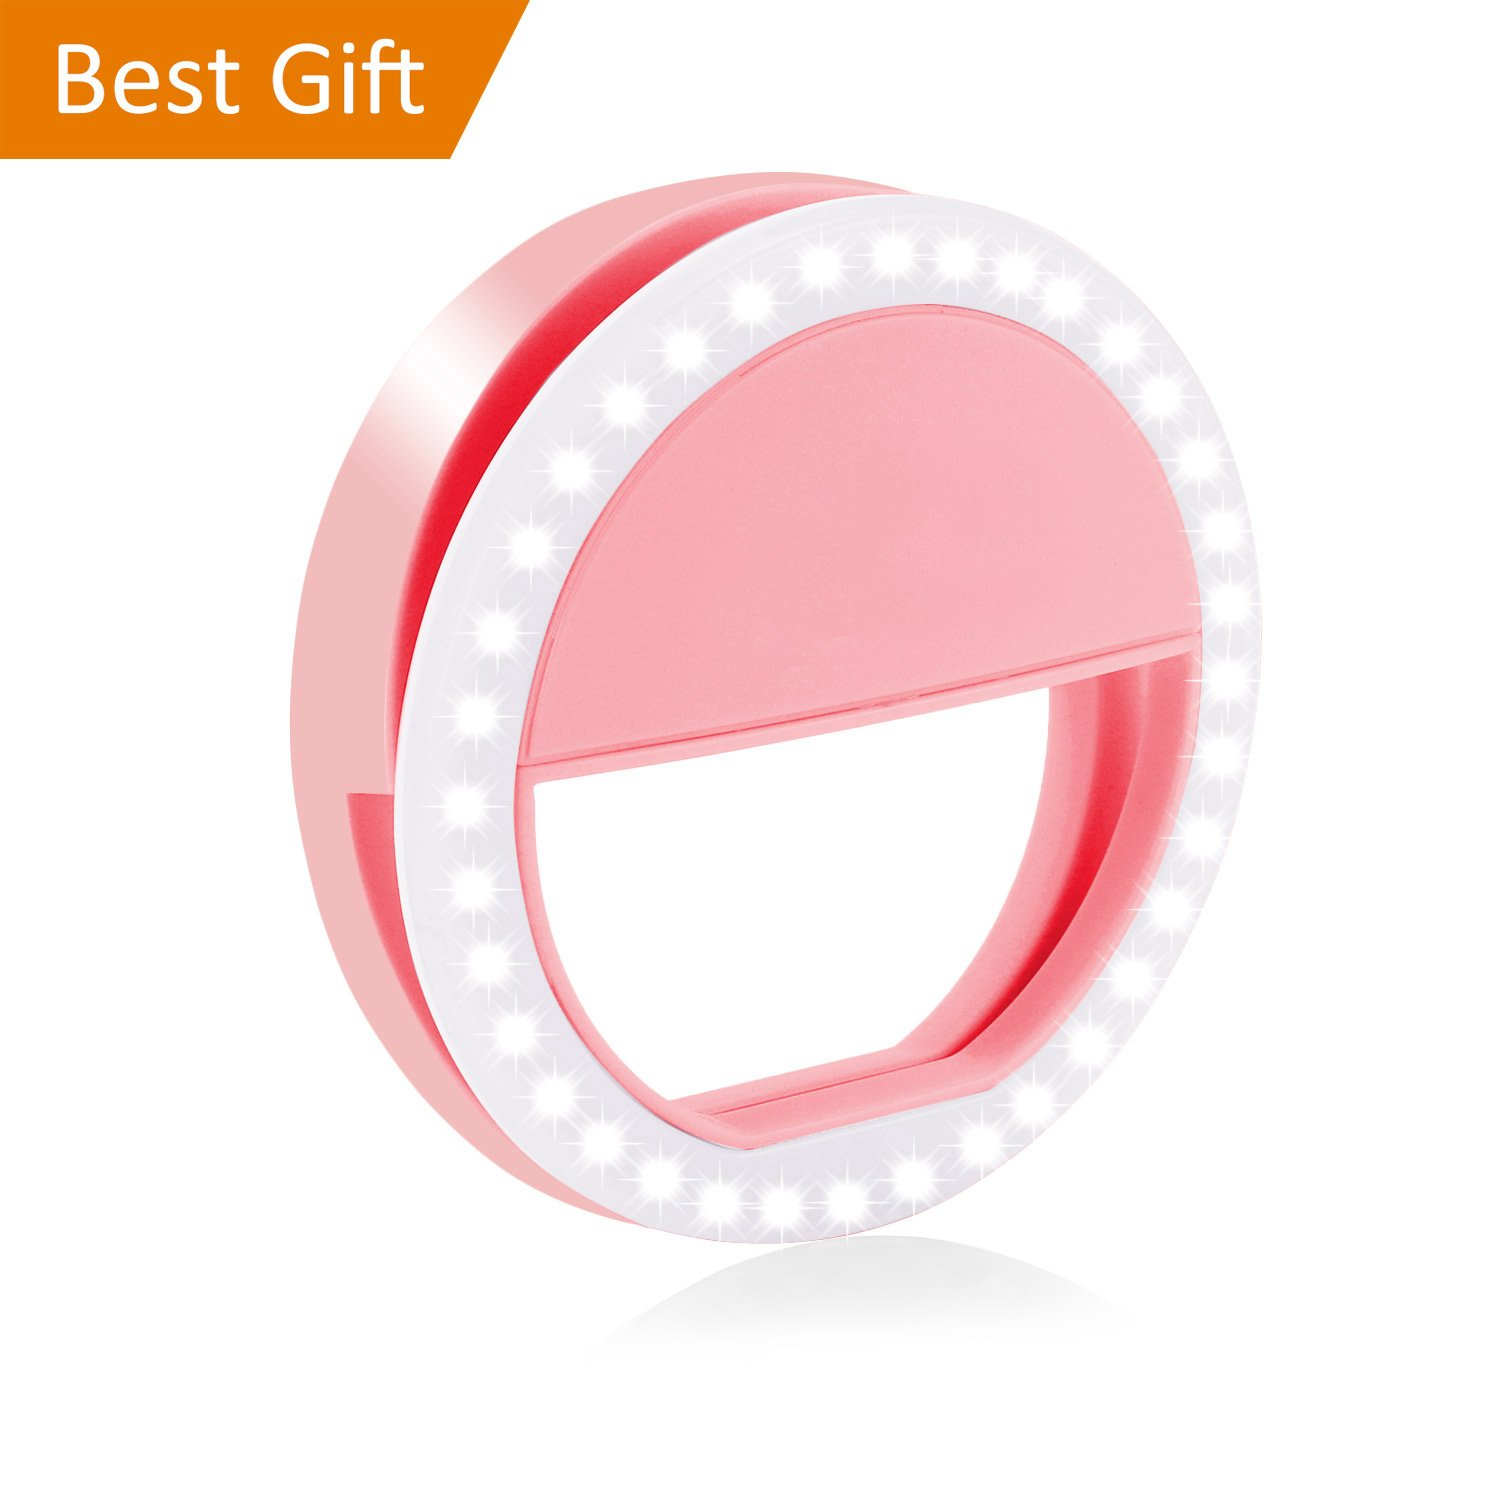 Fodizi Selfie Ring Light for Any Cell Phone [Rechargable][4 Perfect Mode] 36 Led Selfie Ring Light for iPhone iPad Clip On Camera Photography - Pink